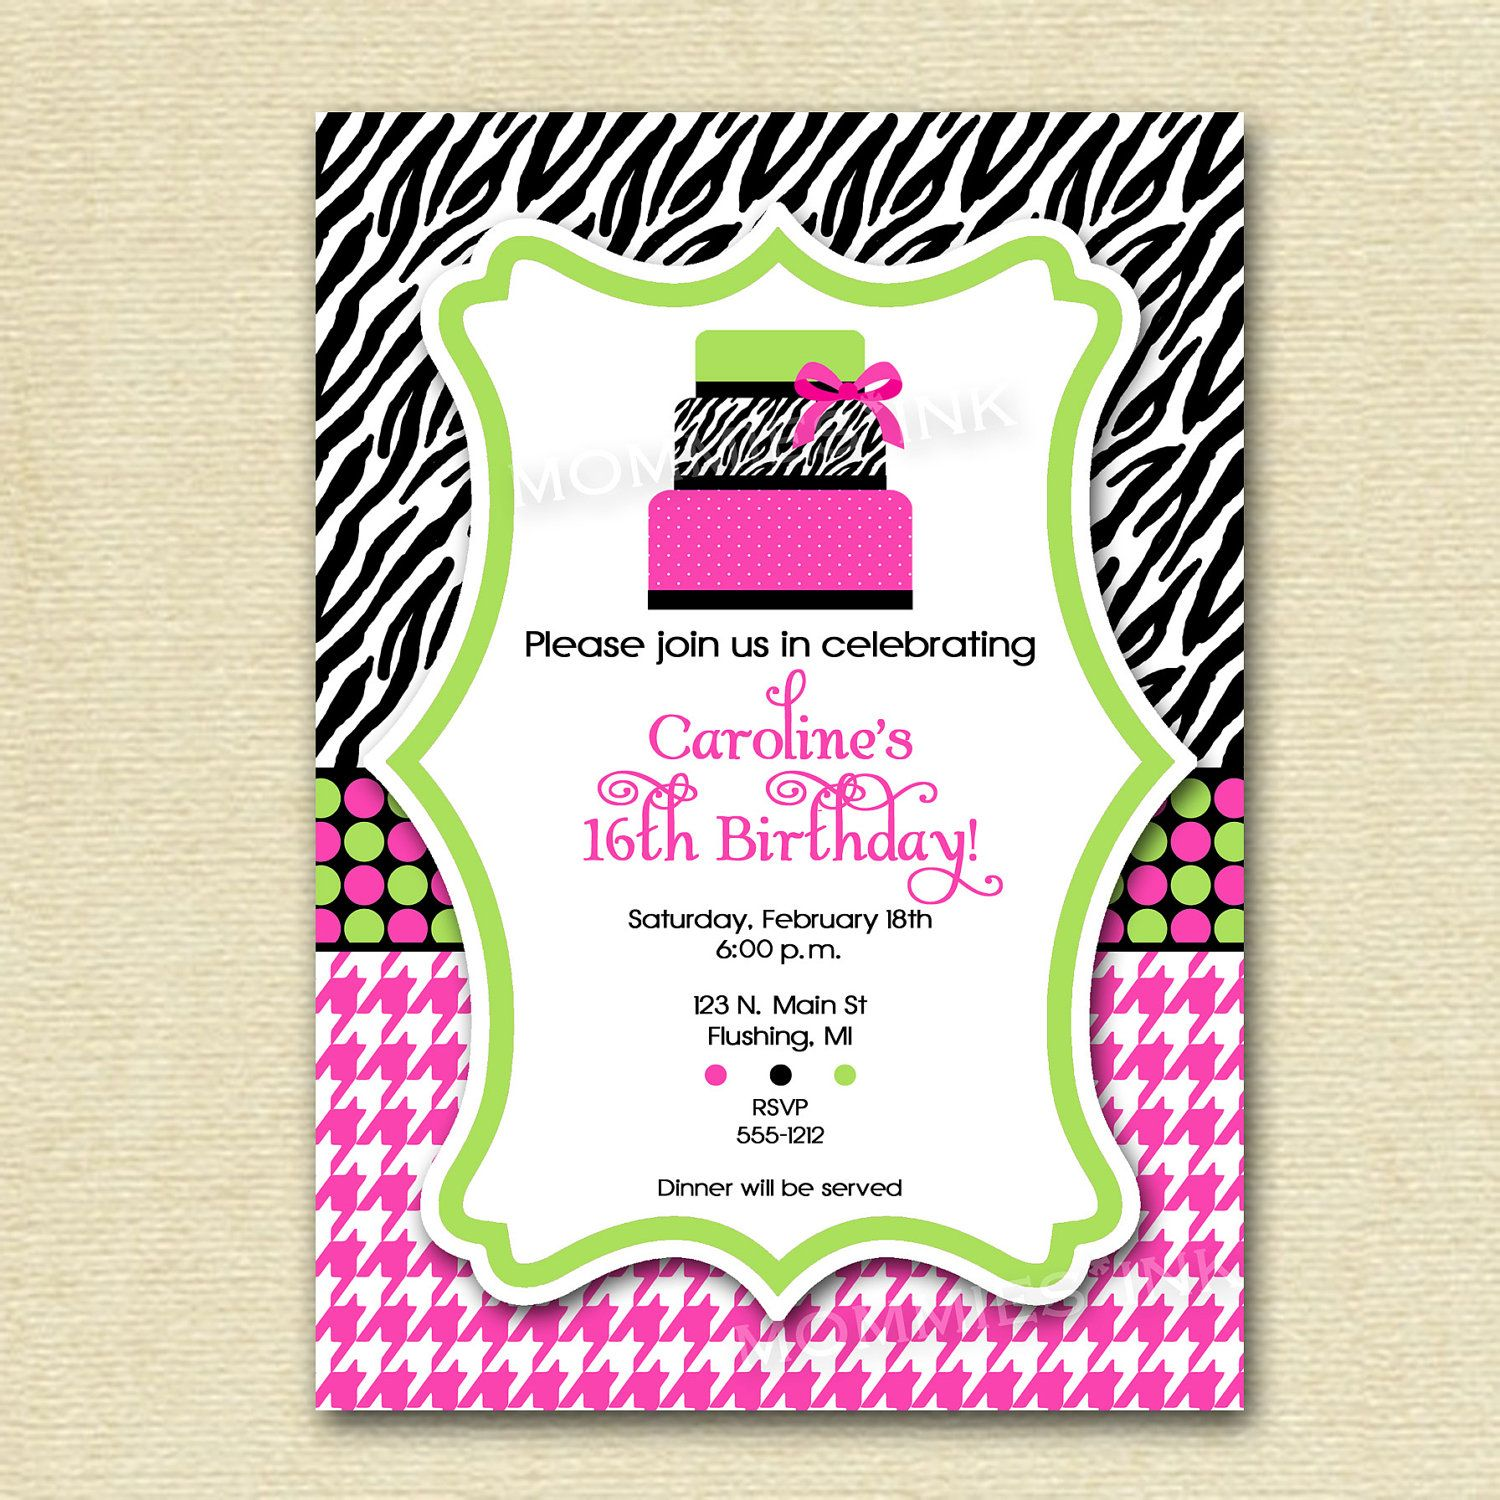 Hot Pink and Lime Green Zebra Print Cake Birthday Party Invitation